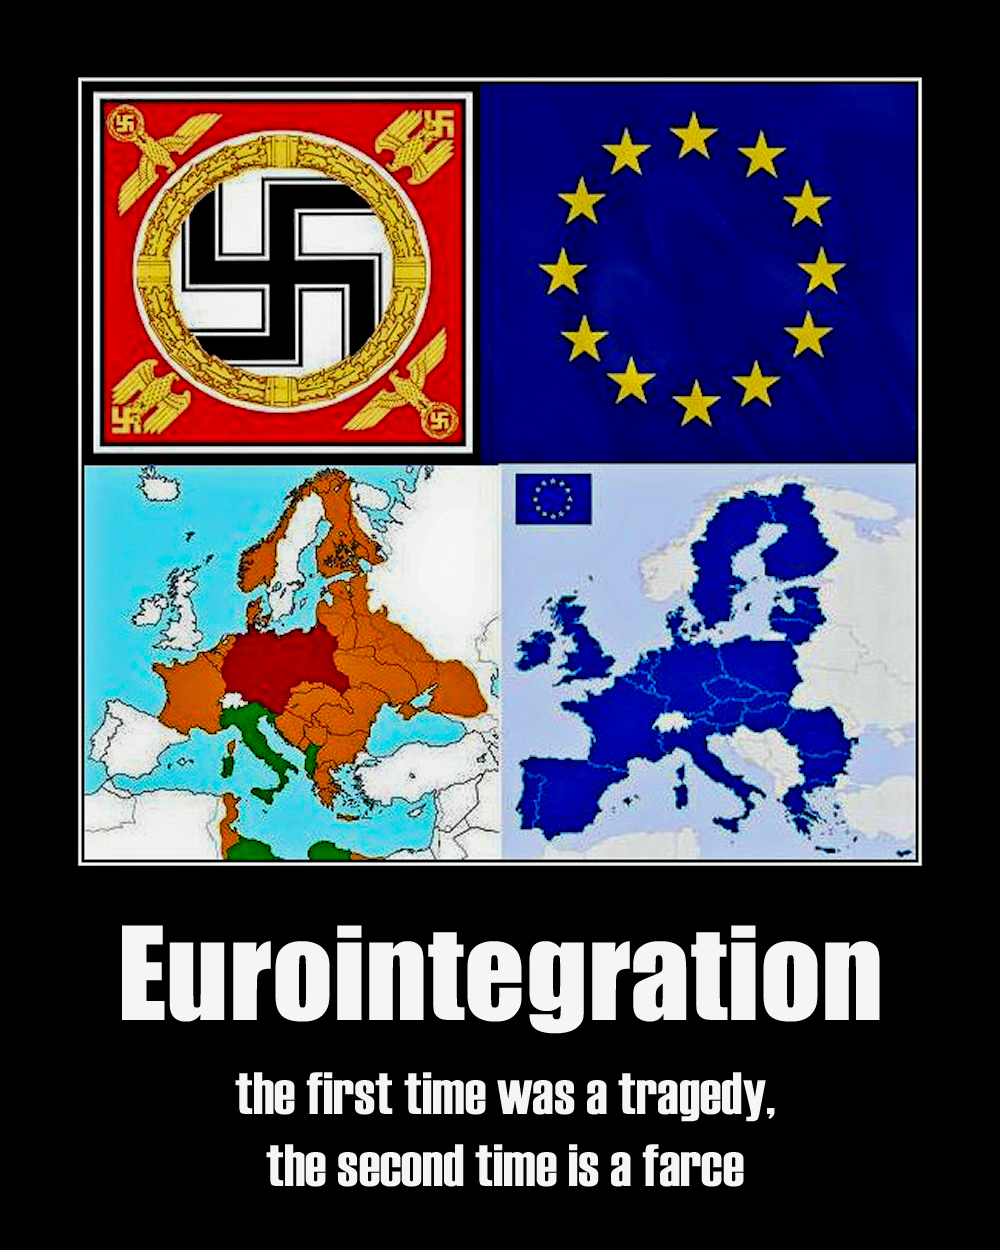 00 Eurointegration. 30.04.14